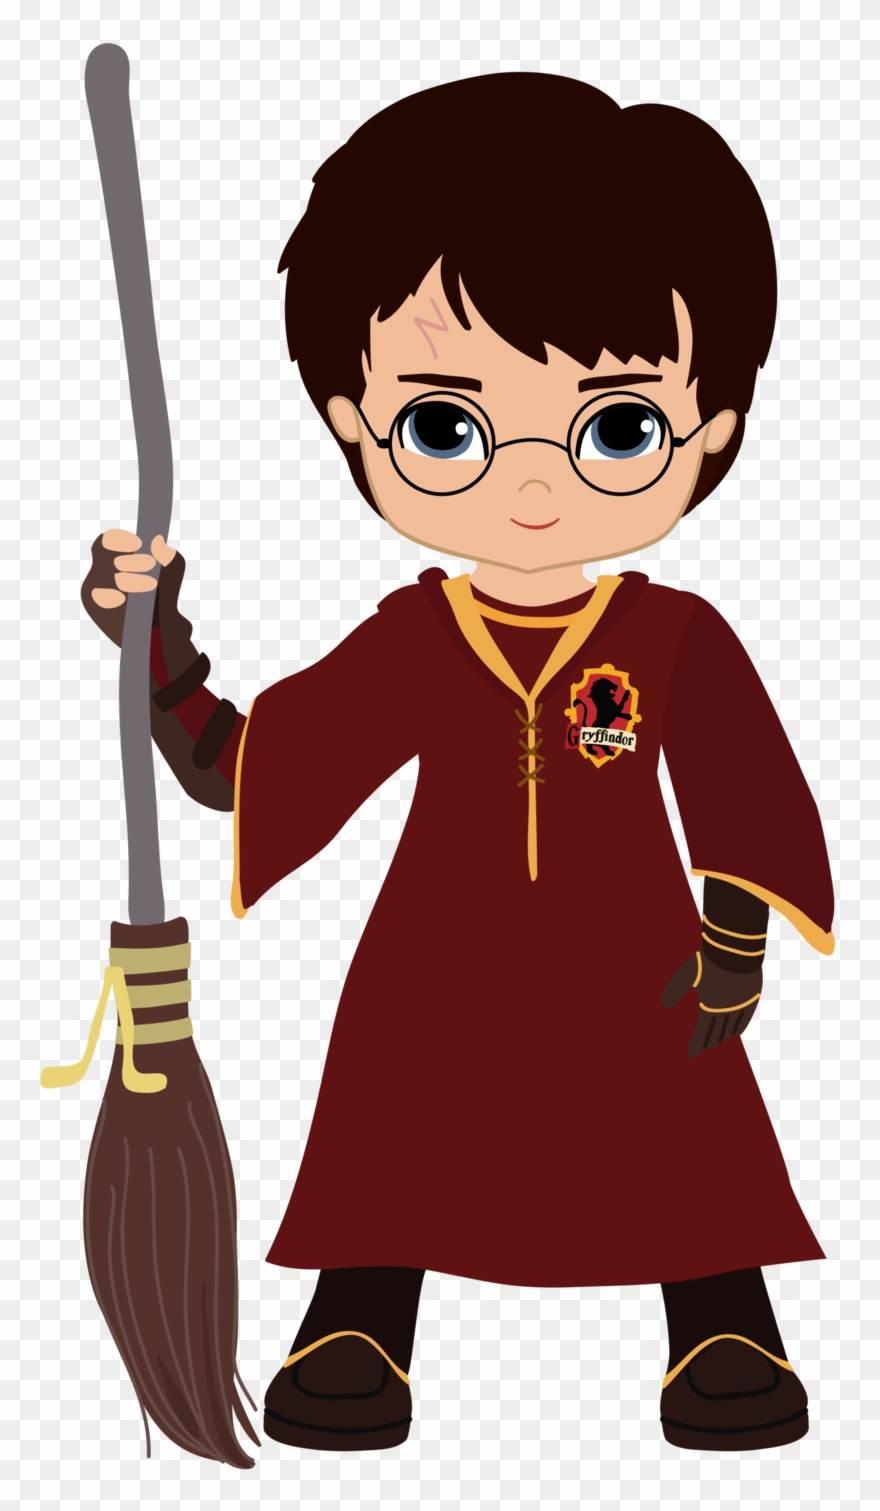 Harry Potter Png Transparent Image.